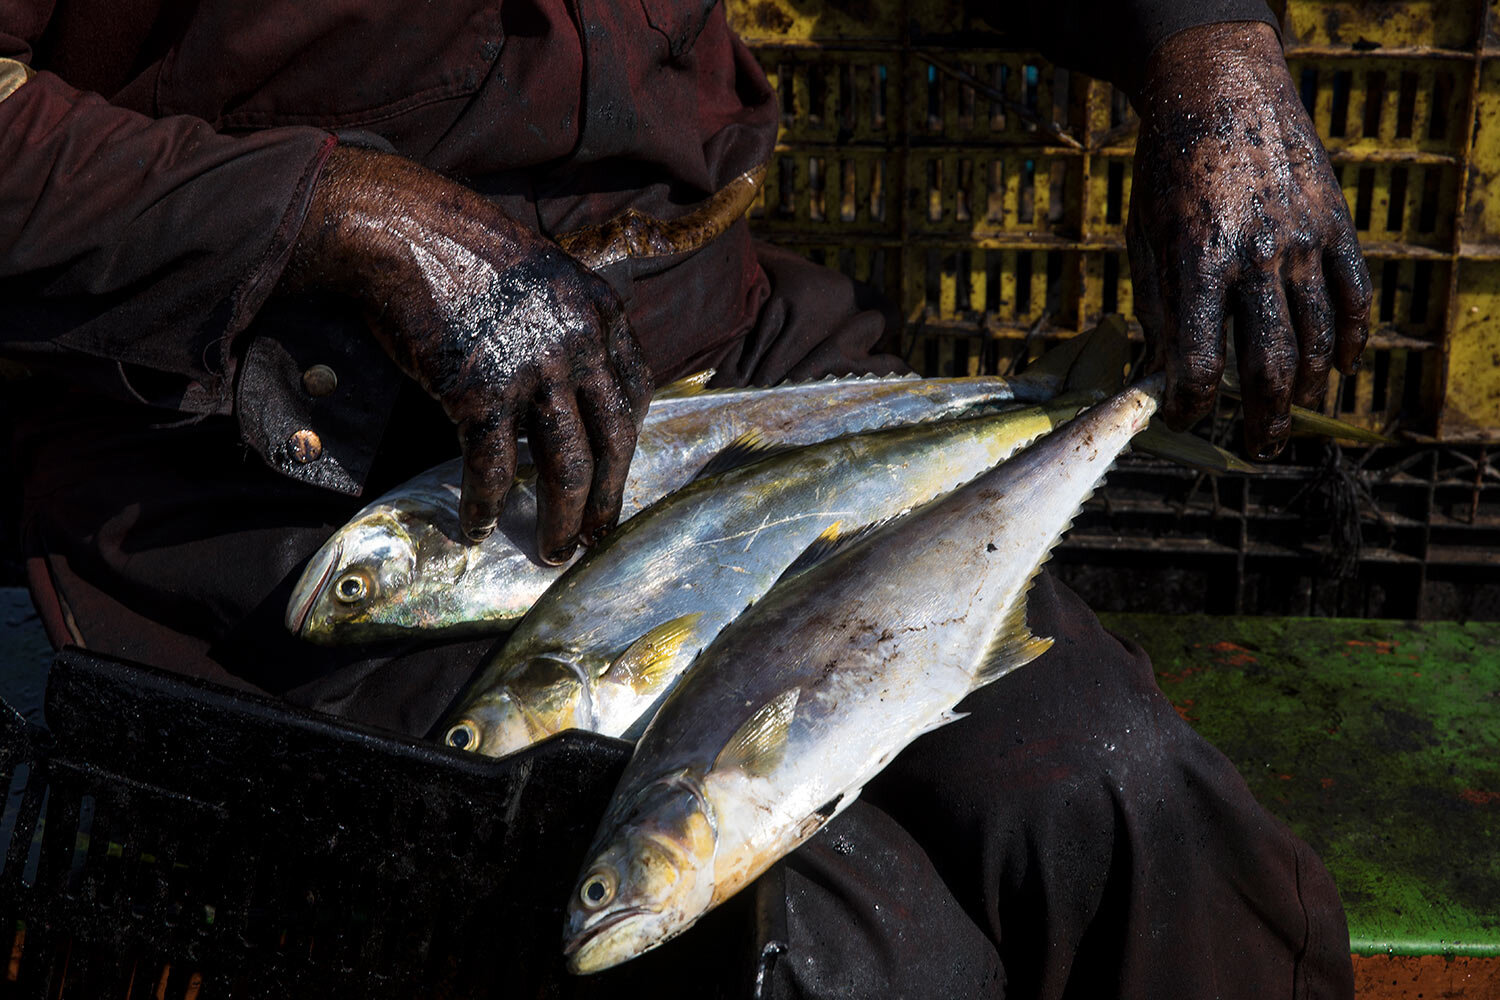 """The hands of fisherman Edward Alexander Barrios are covered in oil as he organizes bass, known as """"robalo,"""" that he caught in Lake Maracaibo as he returns home by boat in Cabimas, Venezuela, May 17, 2019. (AP Photo/Rodrigo Abd)"""